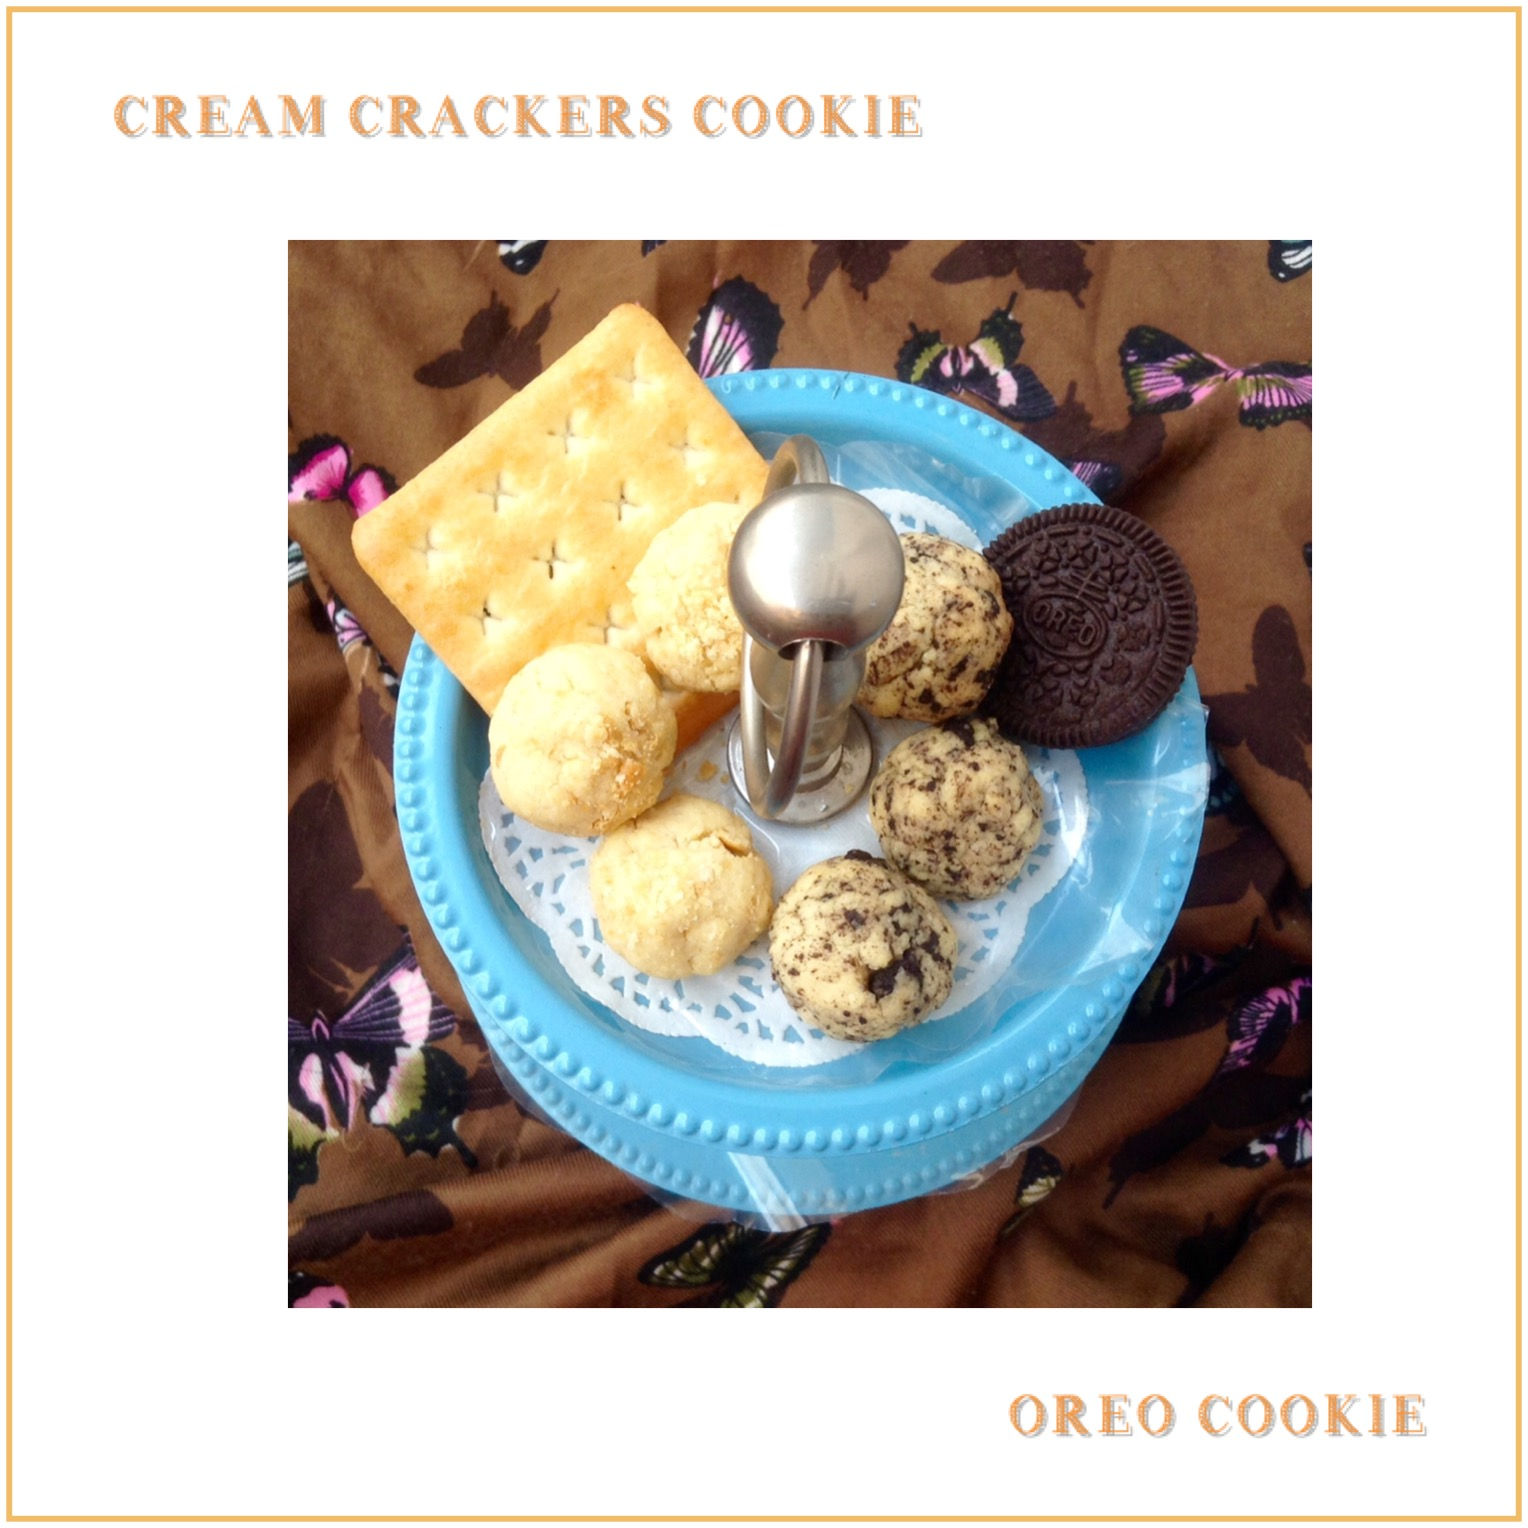 Resep Cream Crackers Cookie Oreo Cookie